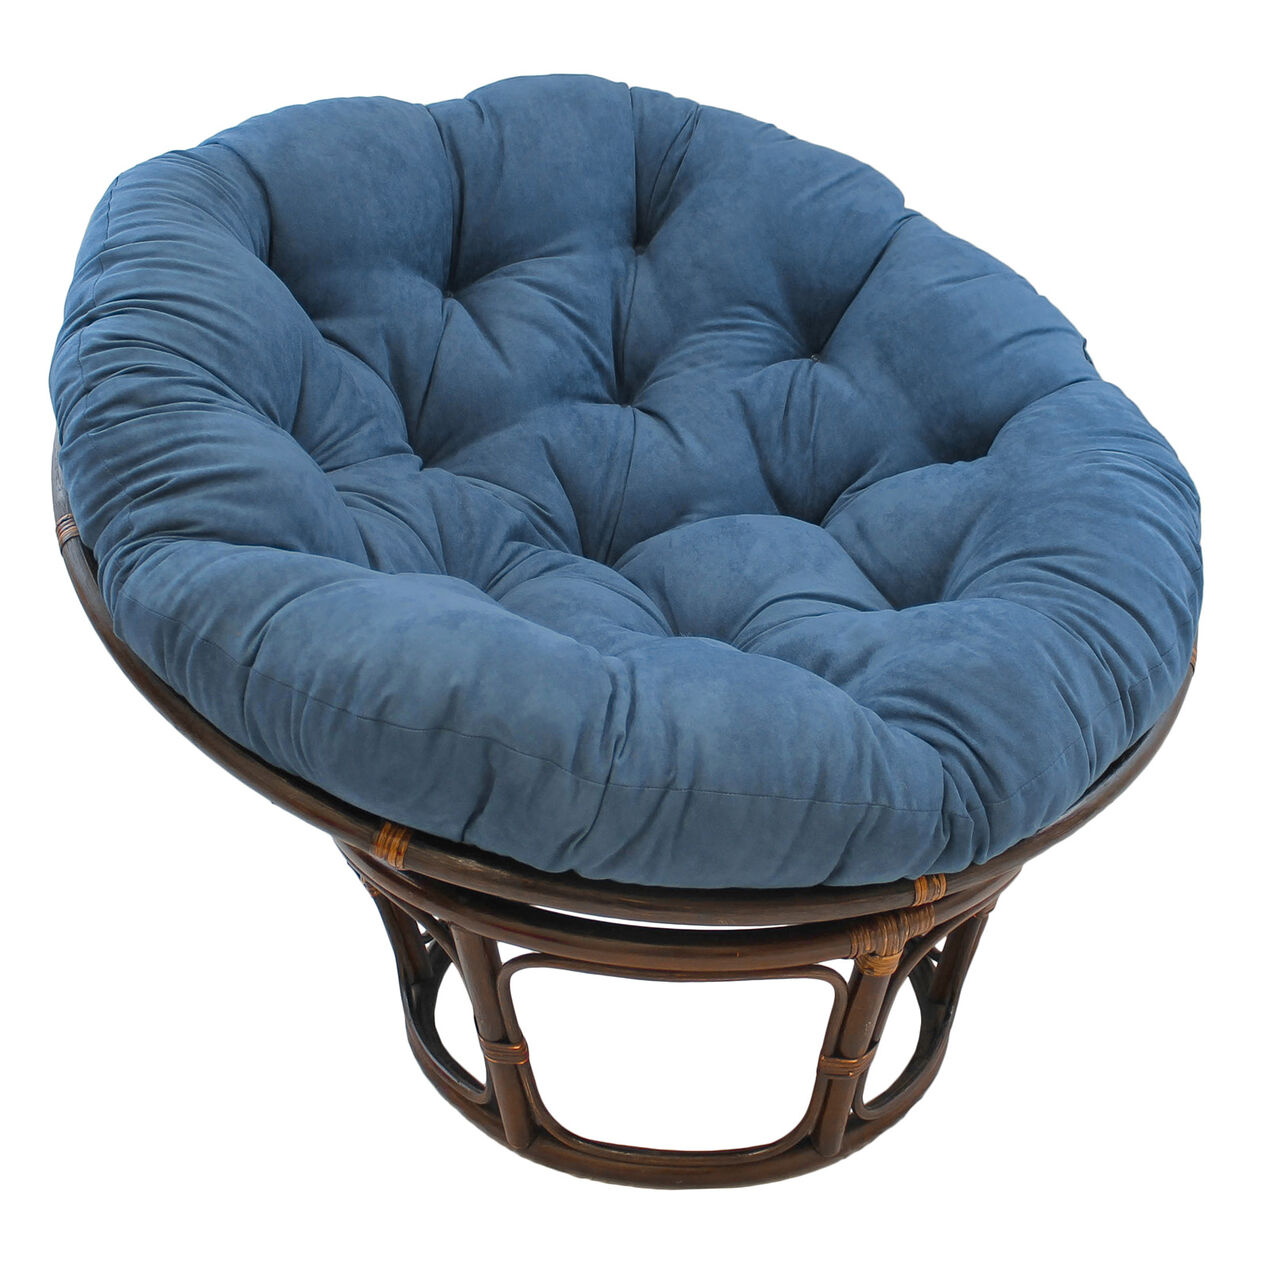 Indigo Suede Papasan Chair Cushion Base And Bowl Sold